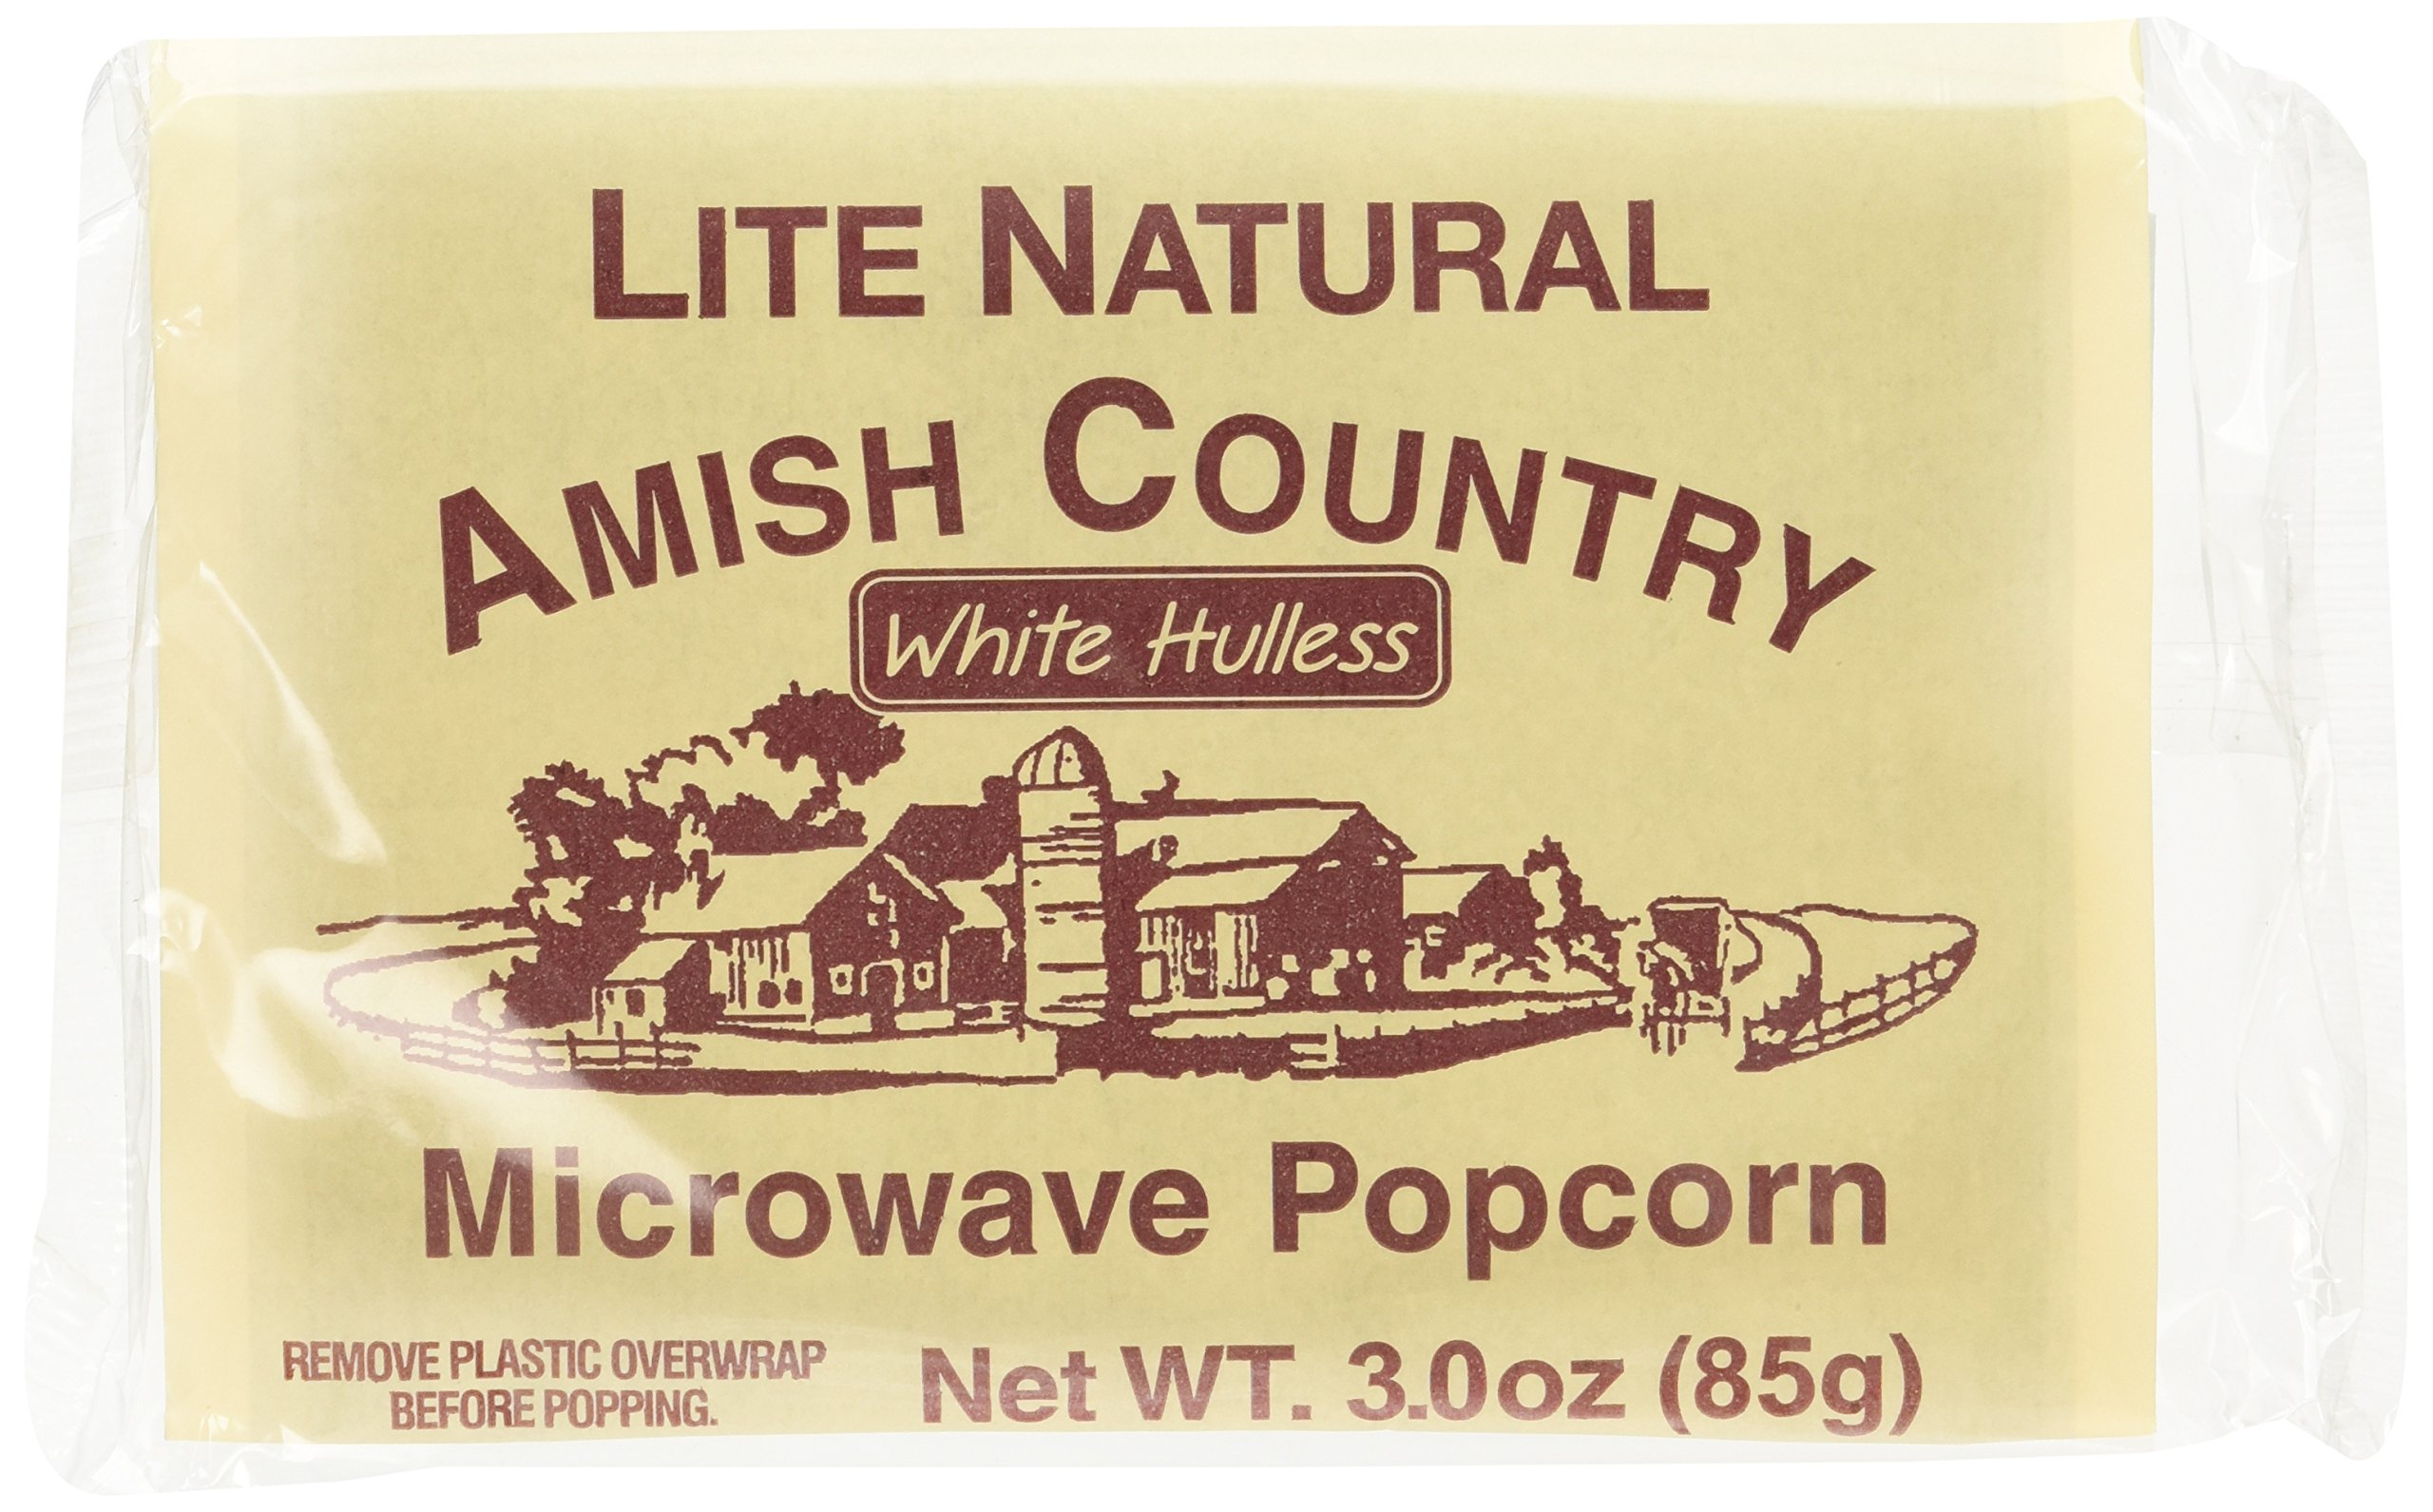 Amish Country Popcorn - Light Natural White Hulless - Old Fashioned Microwave Popcorn - All Natrual, Gluten Free, and Non GMO (10 Bags)